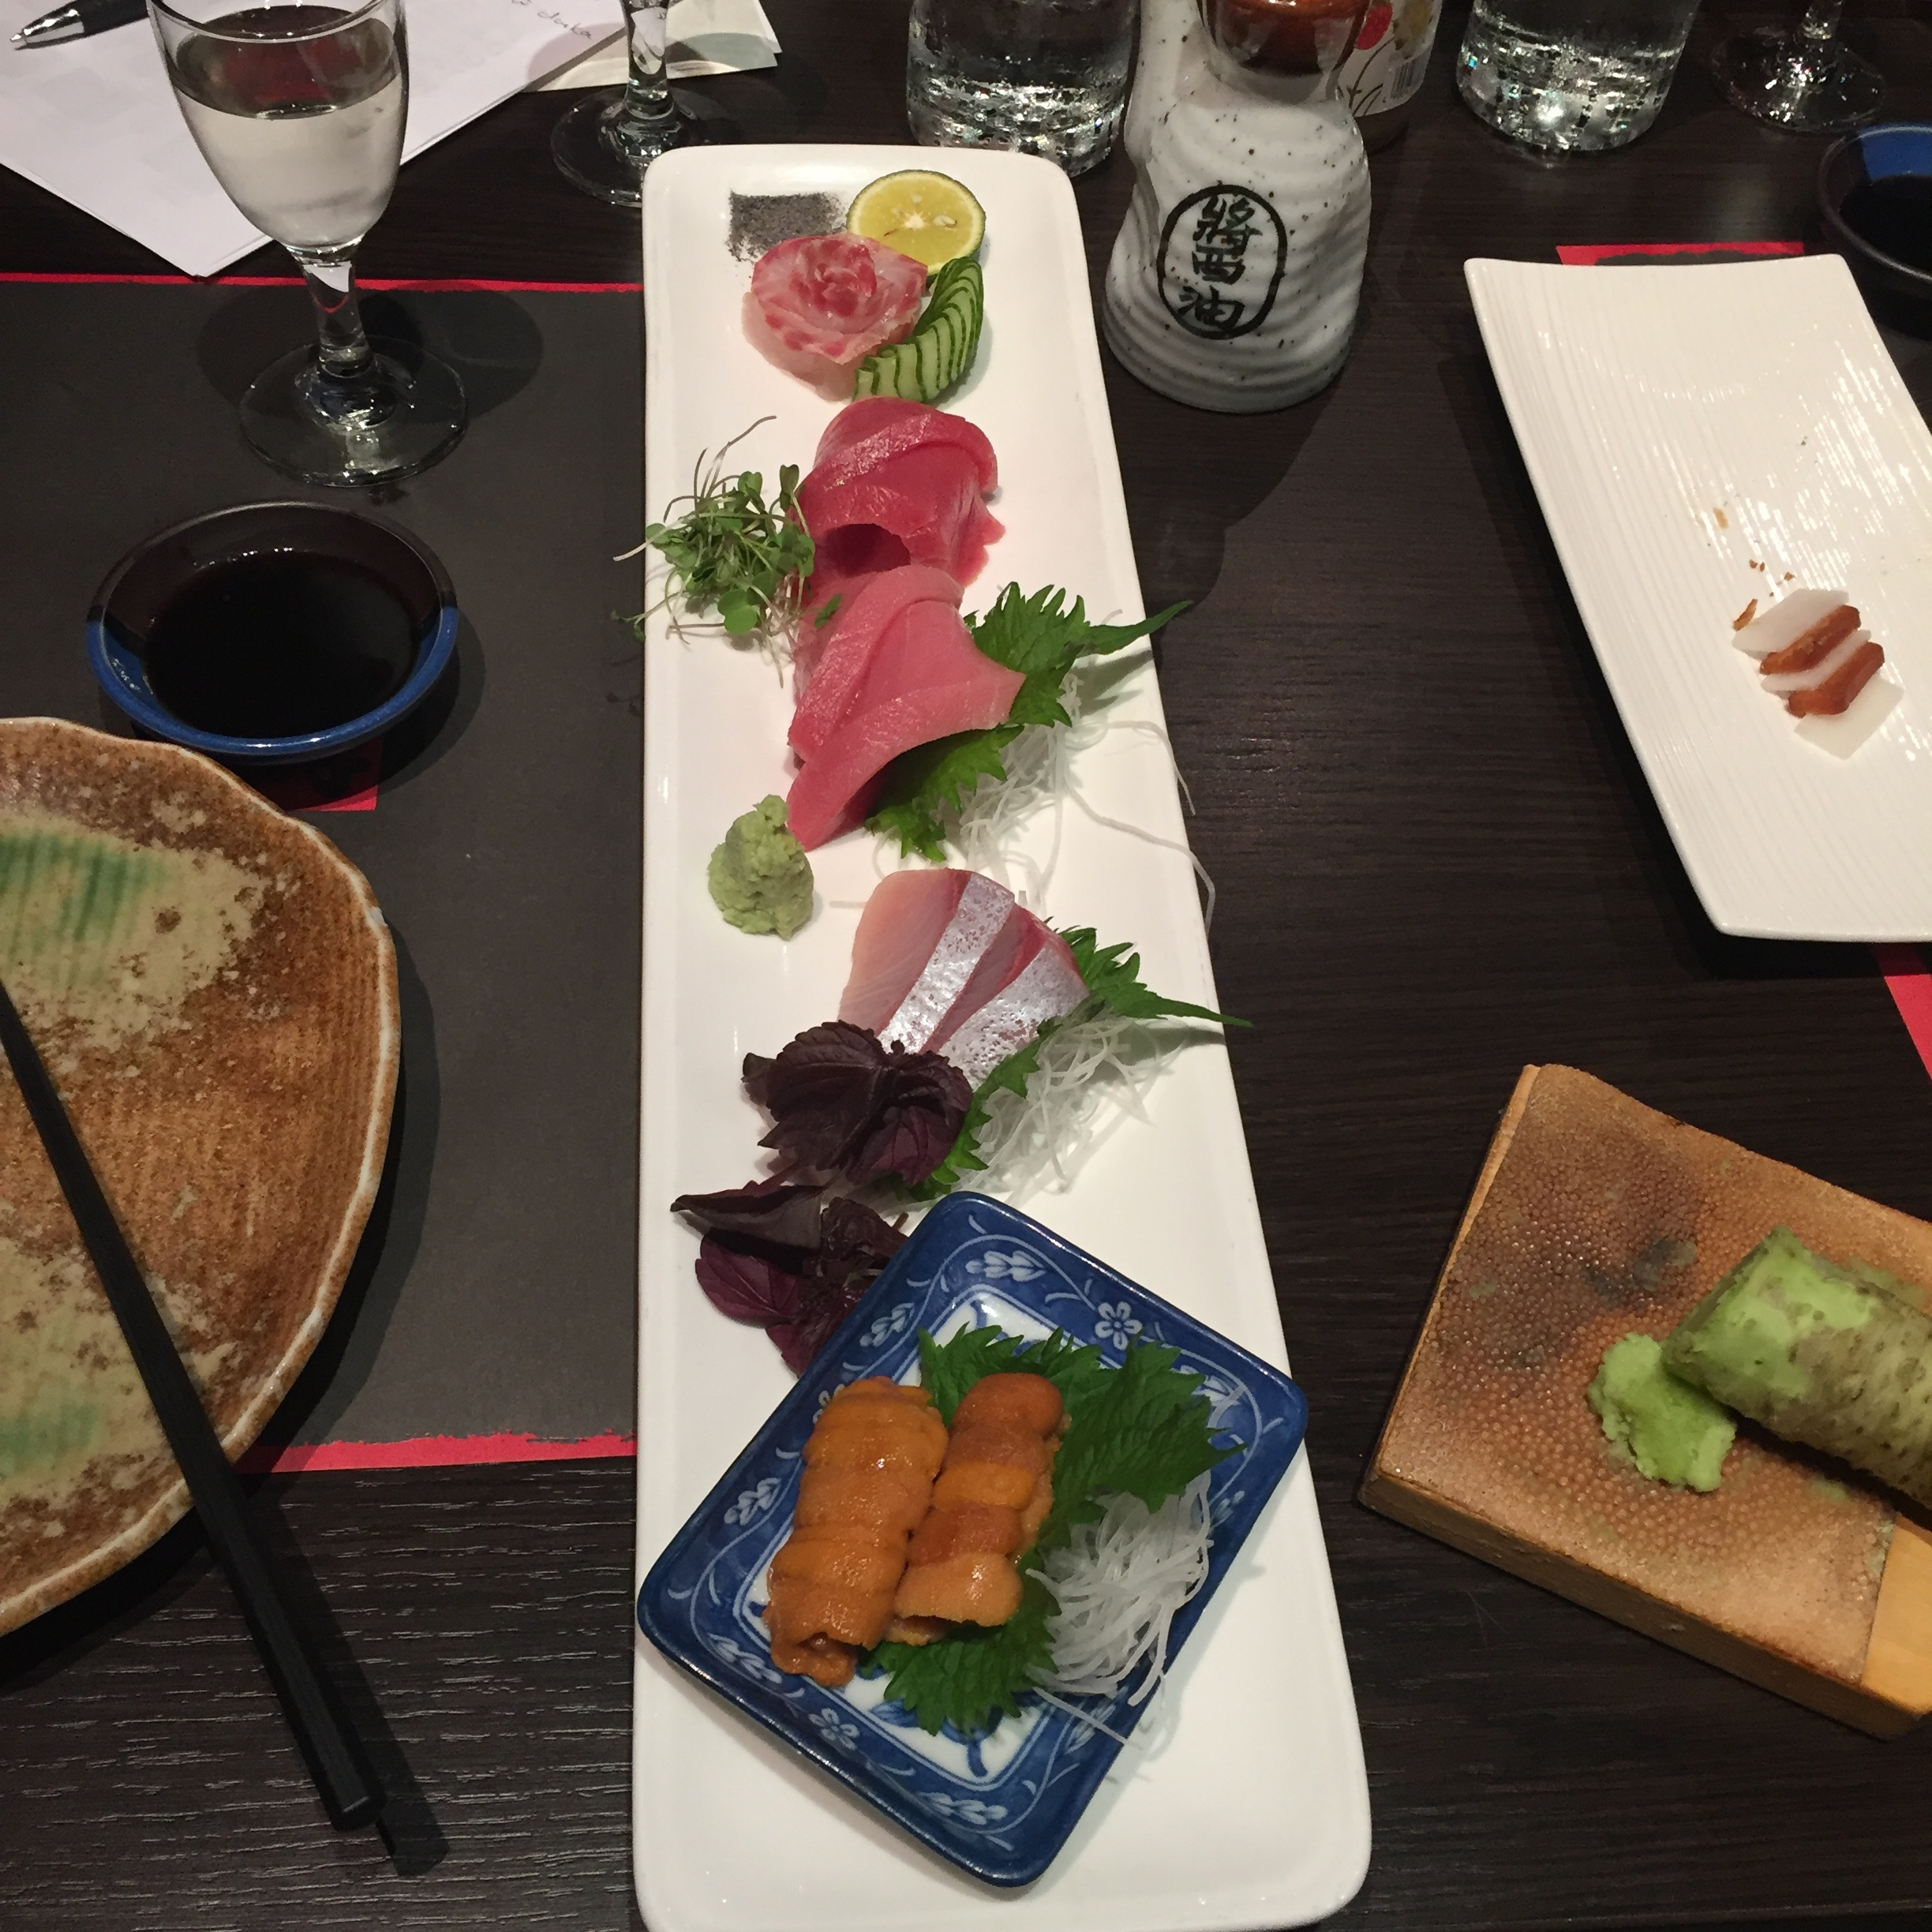 From front to back; Gold Fluke with sour plum and gold leaf Truffle oil glazed salmon, Fatty Yellowtail, Torched Scallop, Blue Fin Tuna marinated in sake, Mirin and soy,Torched Fatty Tuna with spicy radish